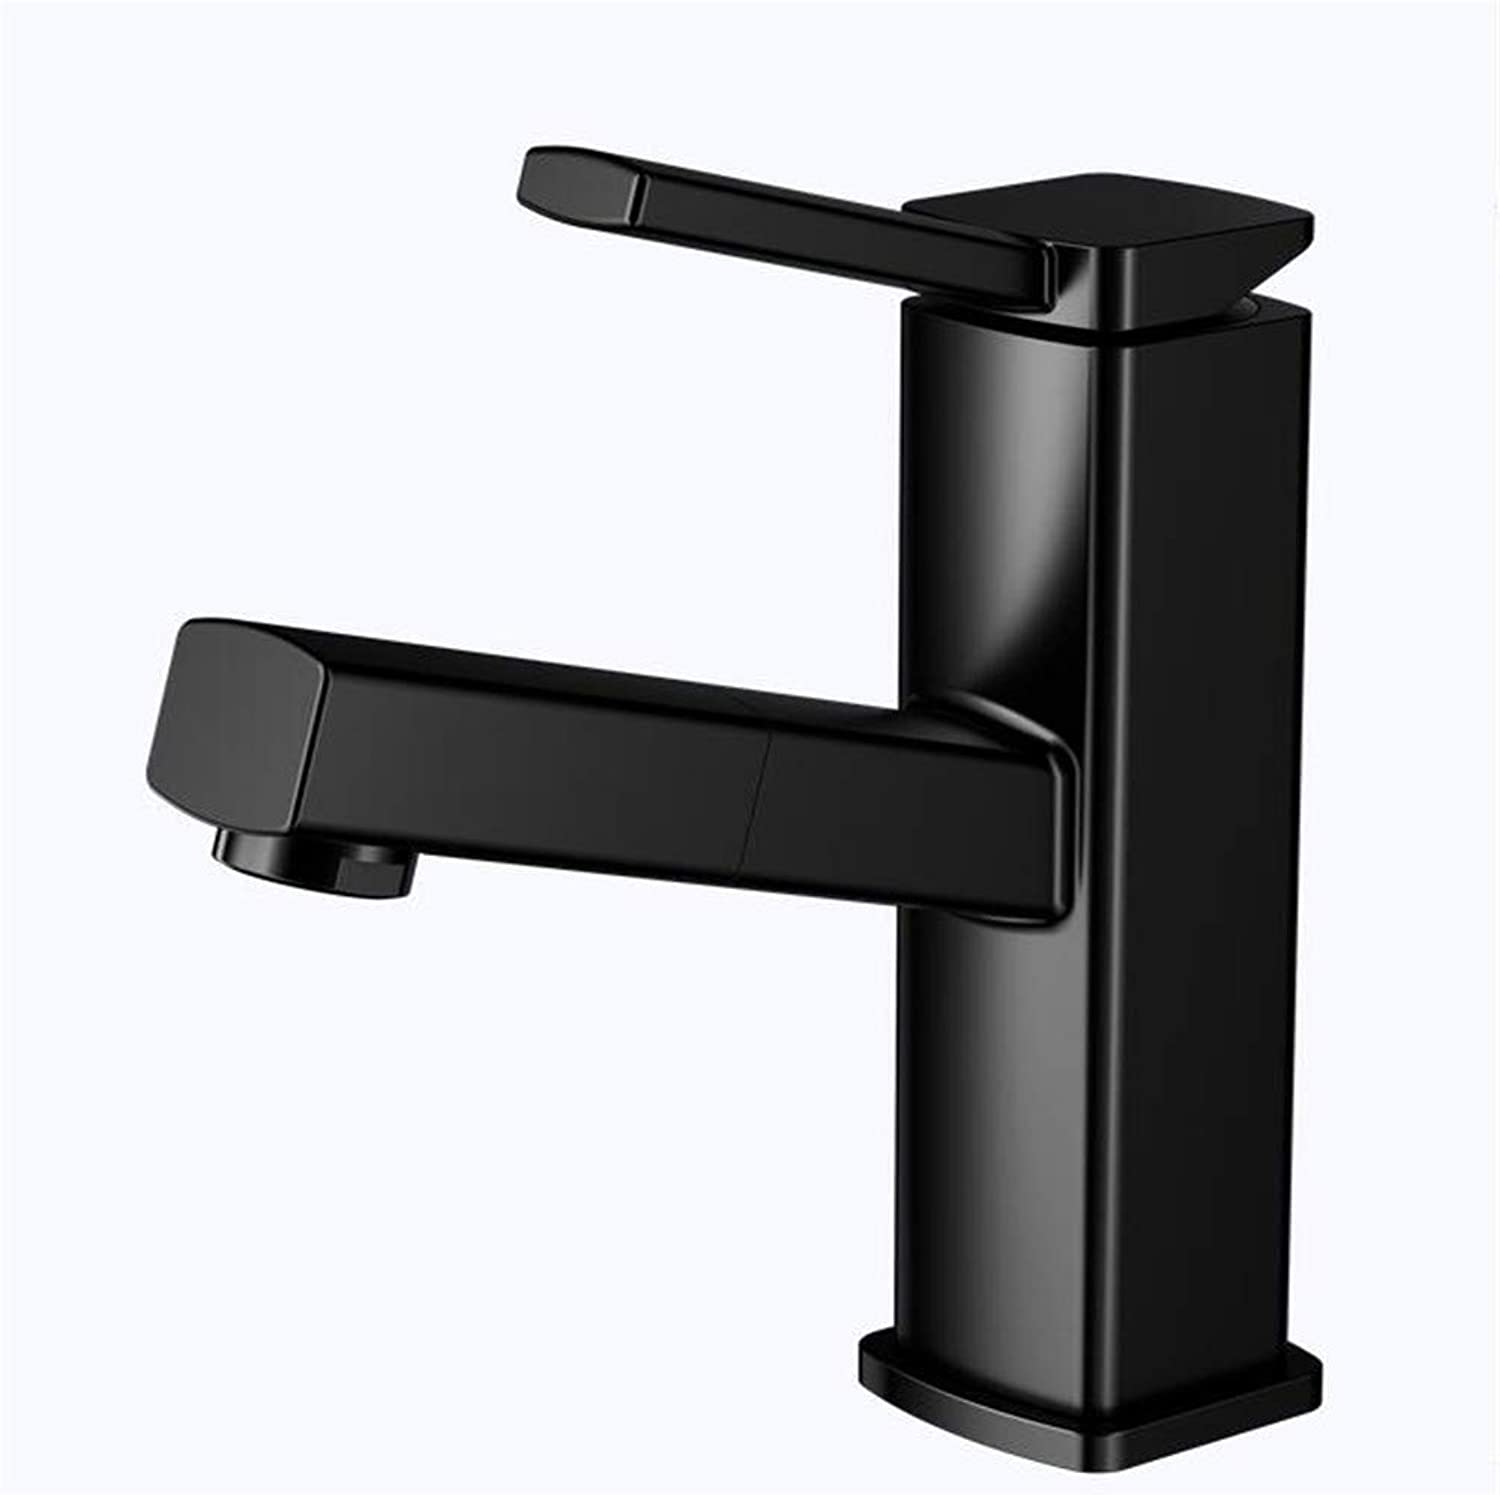 360° redating Faucet Retro Faucetbasin Copper Body Bathroom Above Counter Basin Wash Basin Black Paint